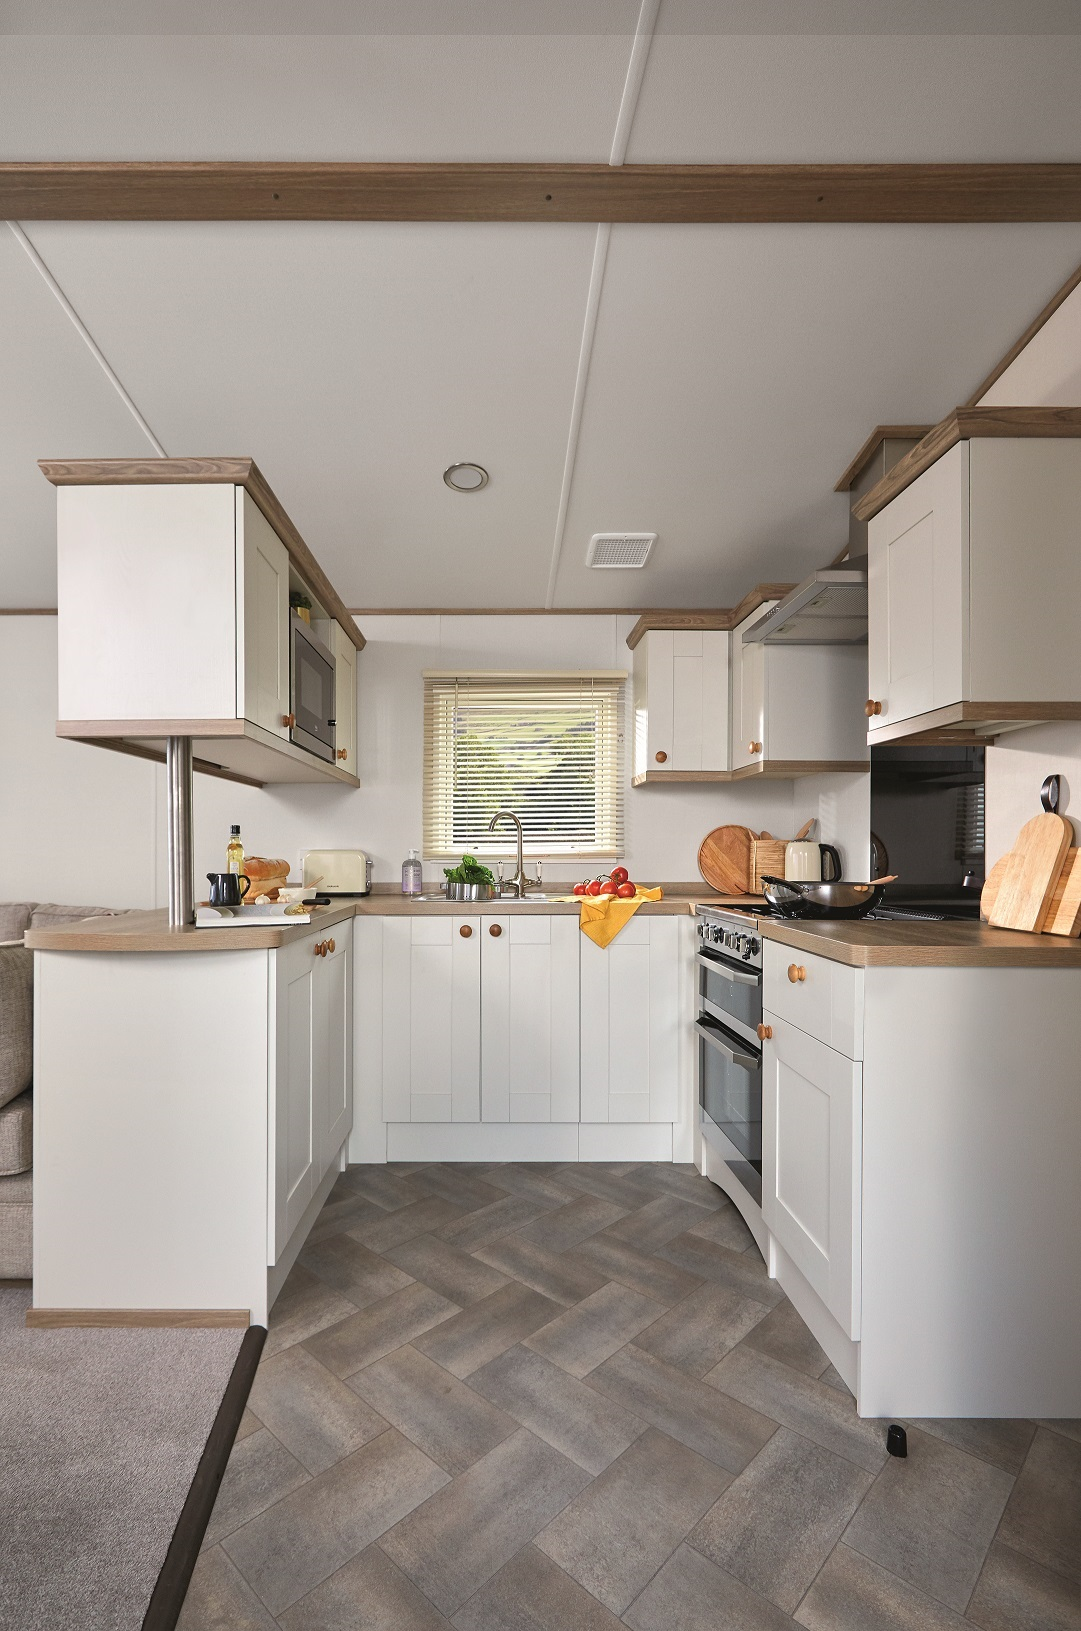 ABI Wimbledon: Static Caravans and Holiday Homes for Sale on Caravan Parks, Frosterley, Durham and Weardale Large Image 3